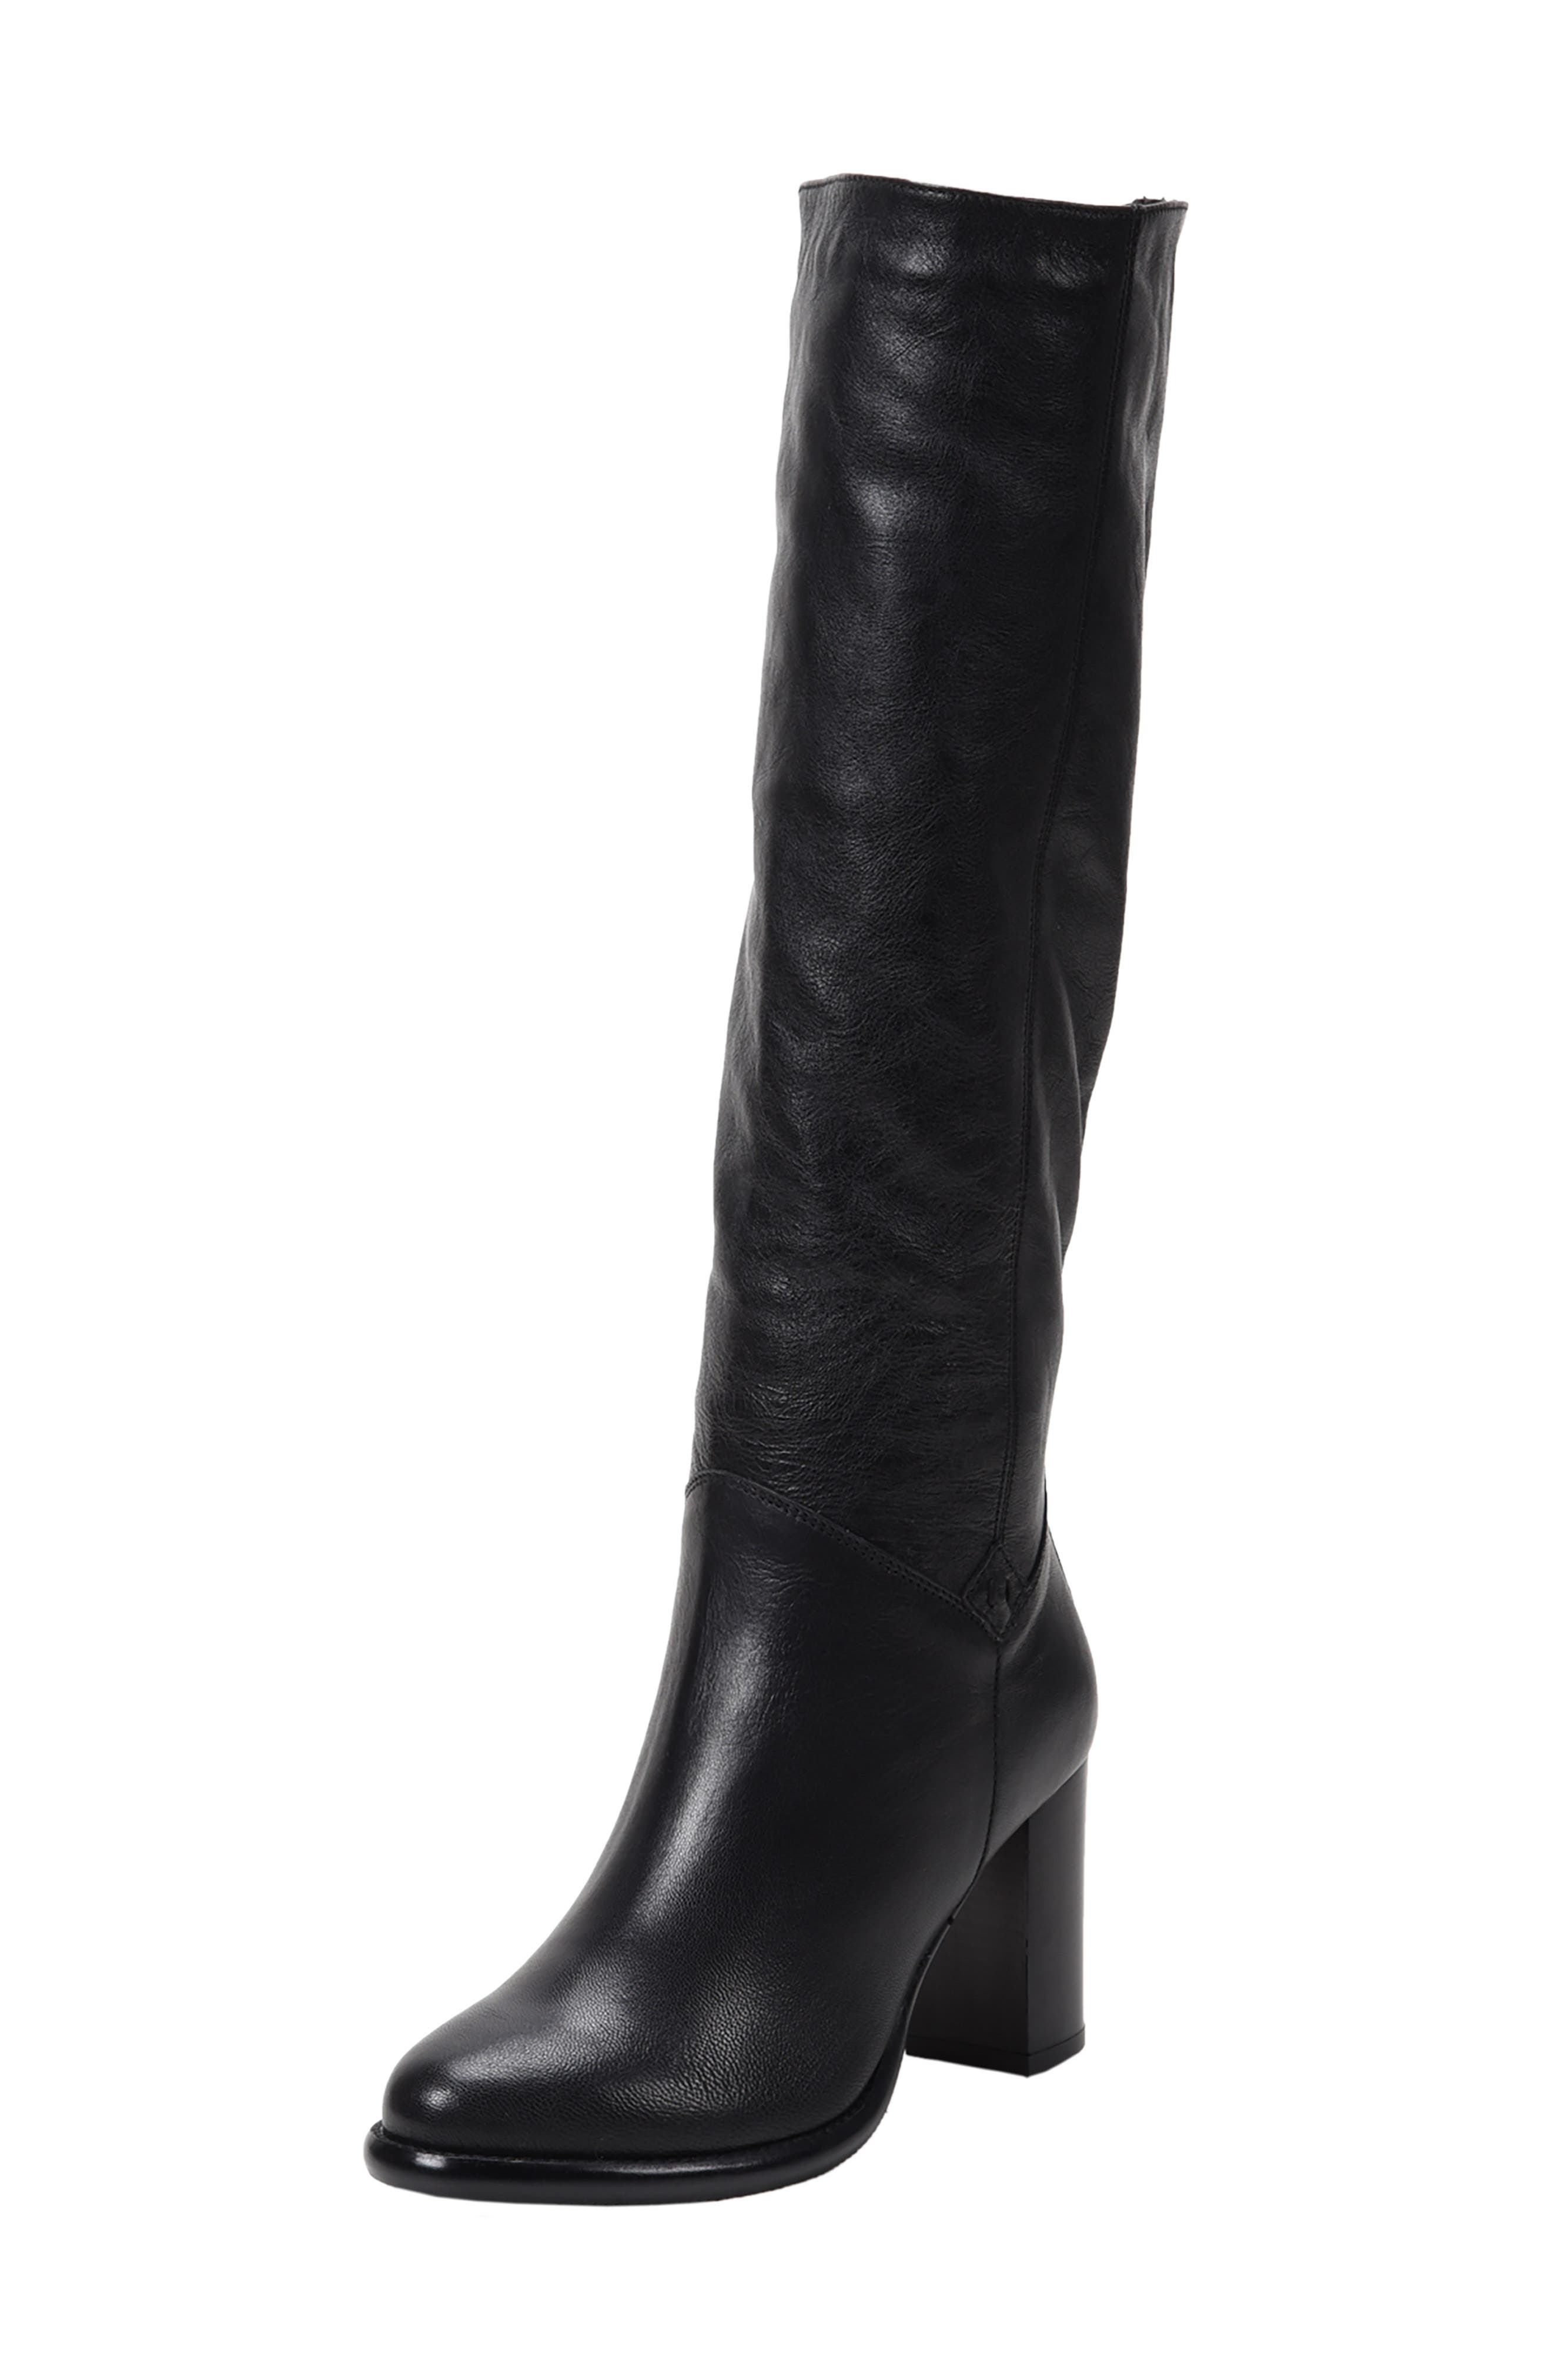 Michela SP Waterproof Genuine Shearling Lined Boot,                             Main thumbnail 1, color,                             BLACK METALLIC LEATHER